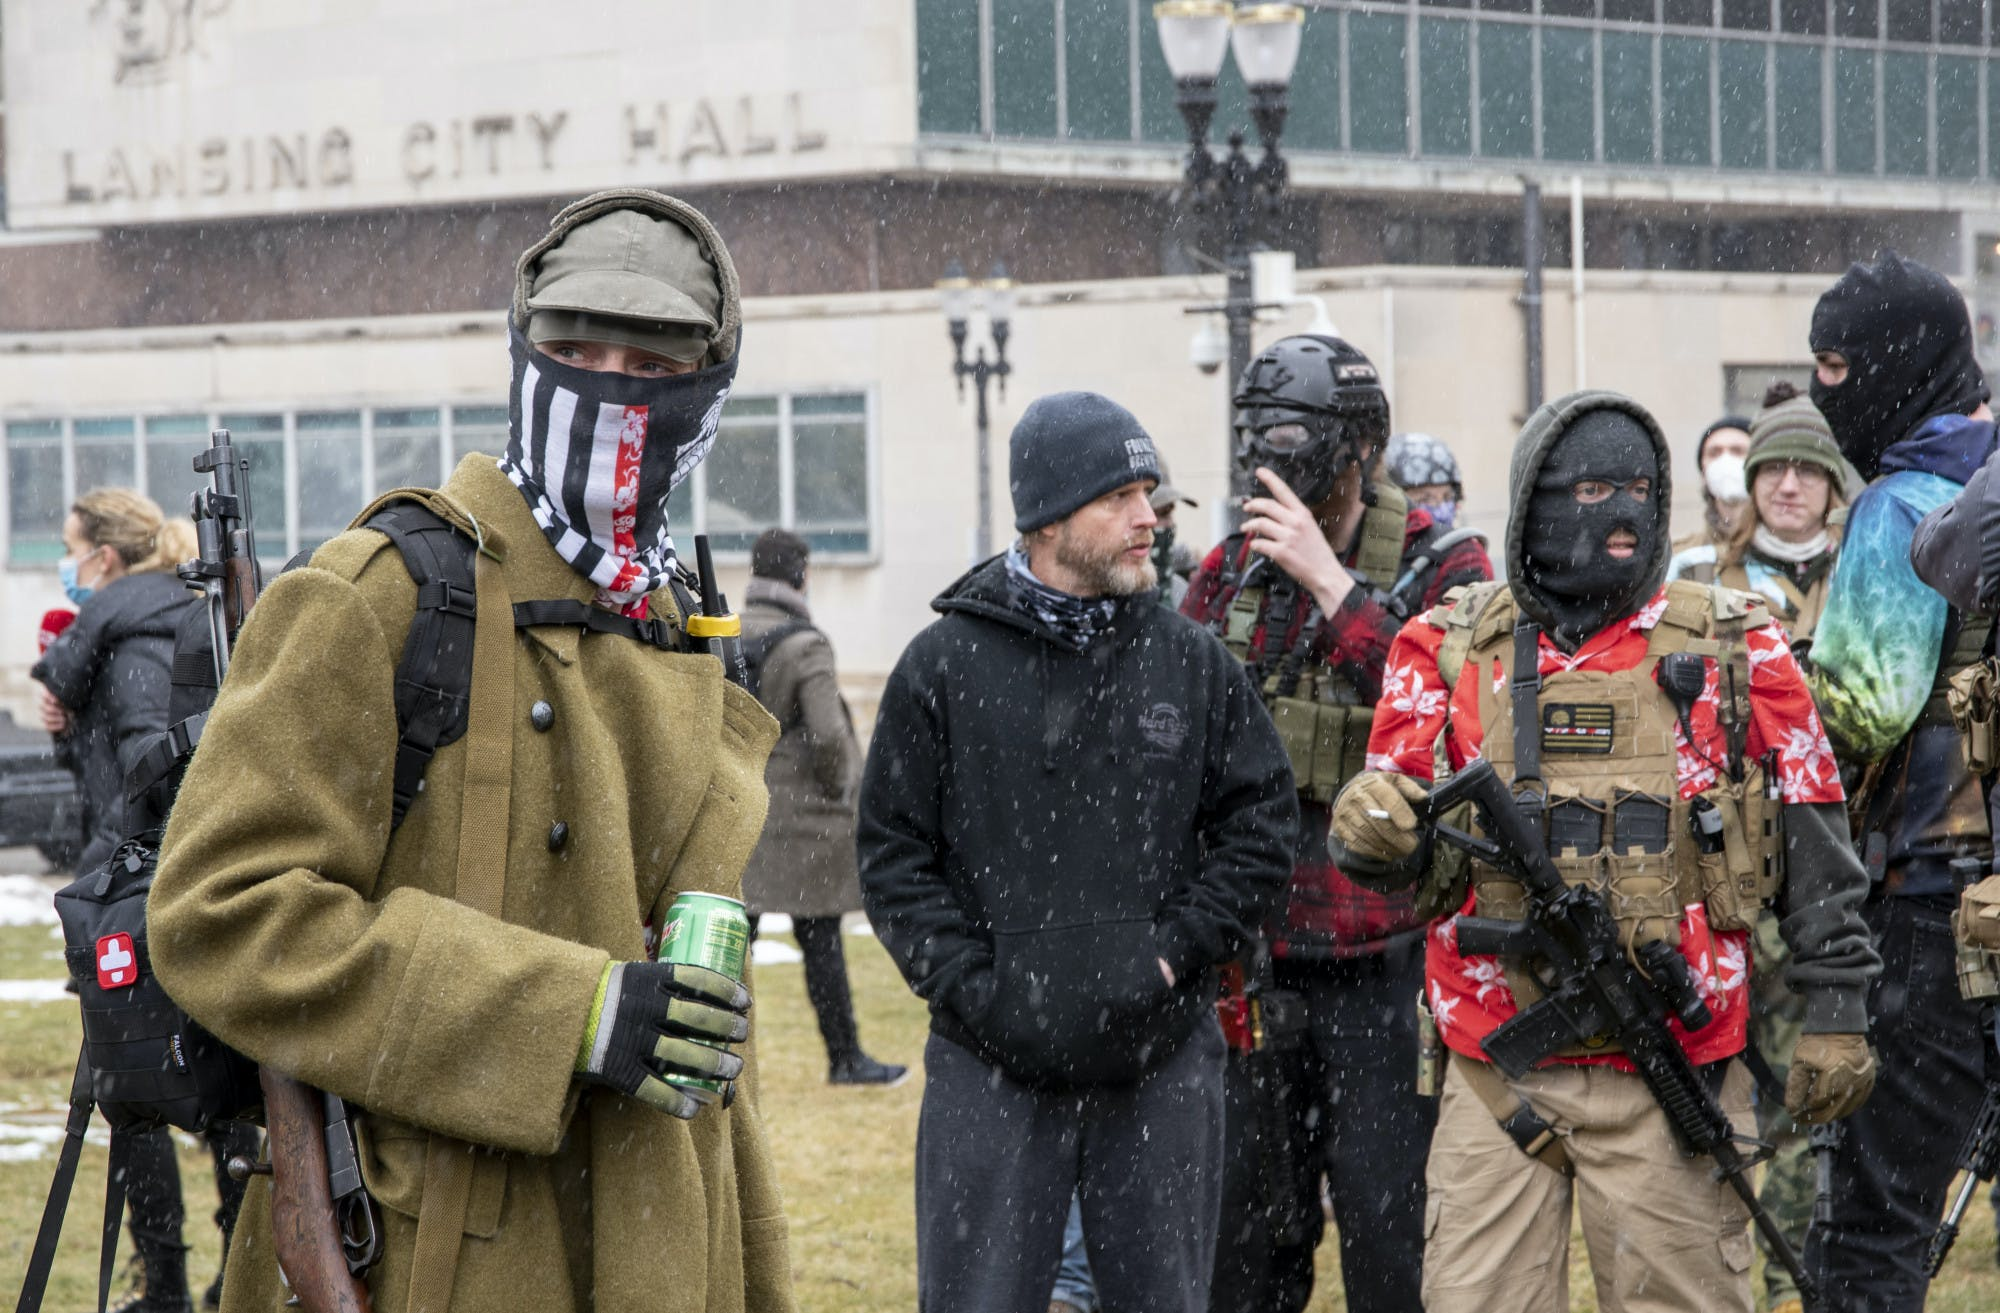 A group of people, some of them armed, some of them wearing ski masks, stand in front of a building that reads, 'Lansing City Hall.'